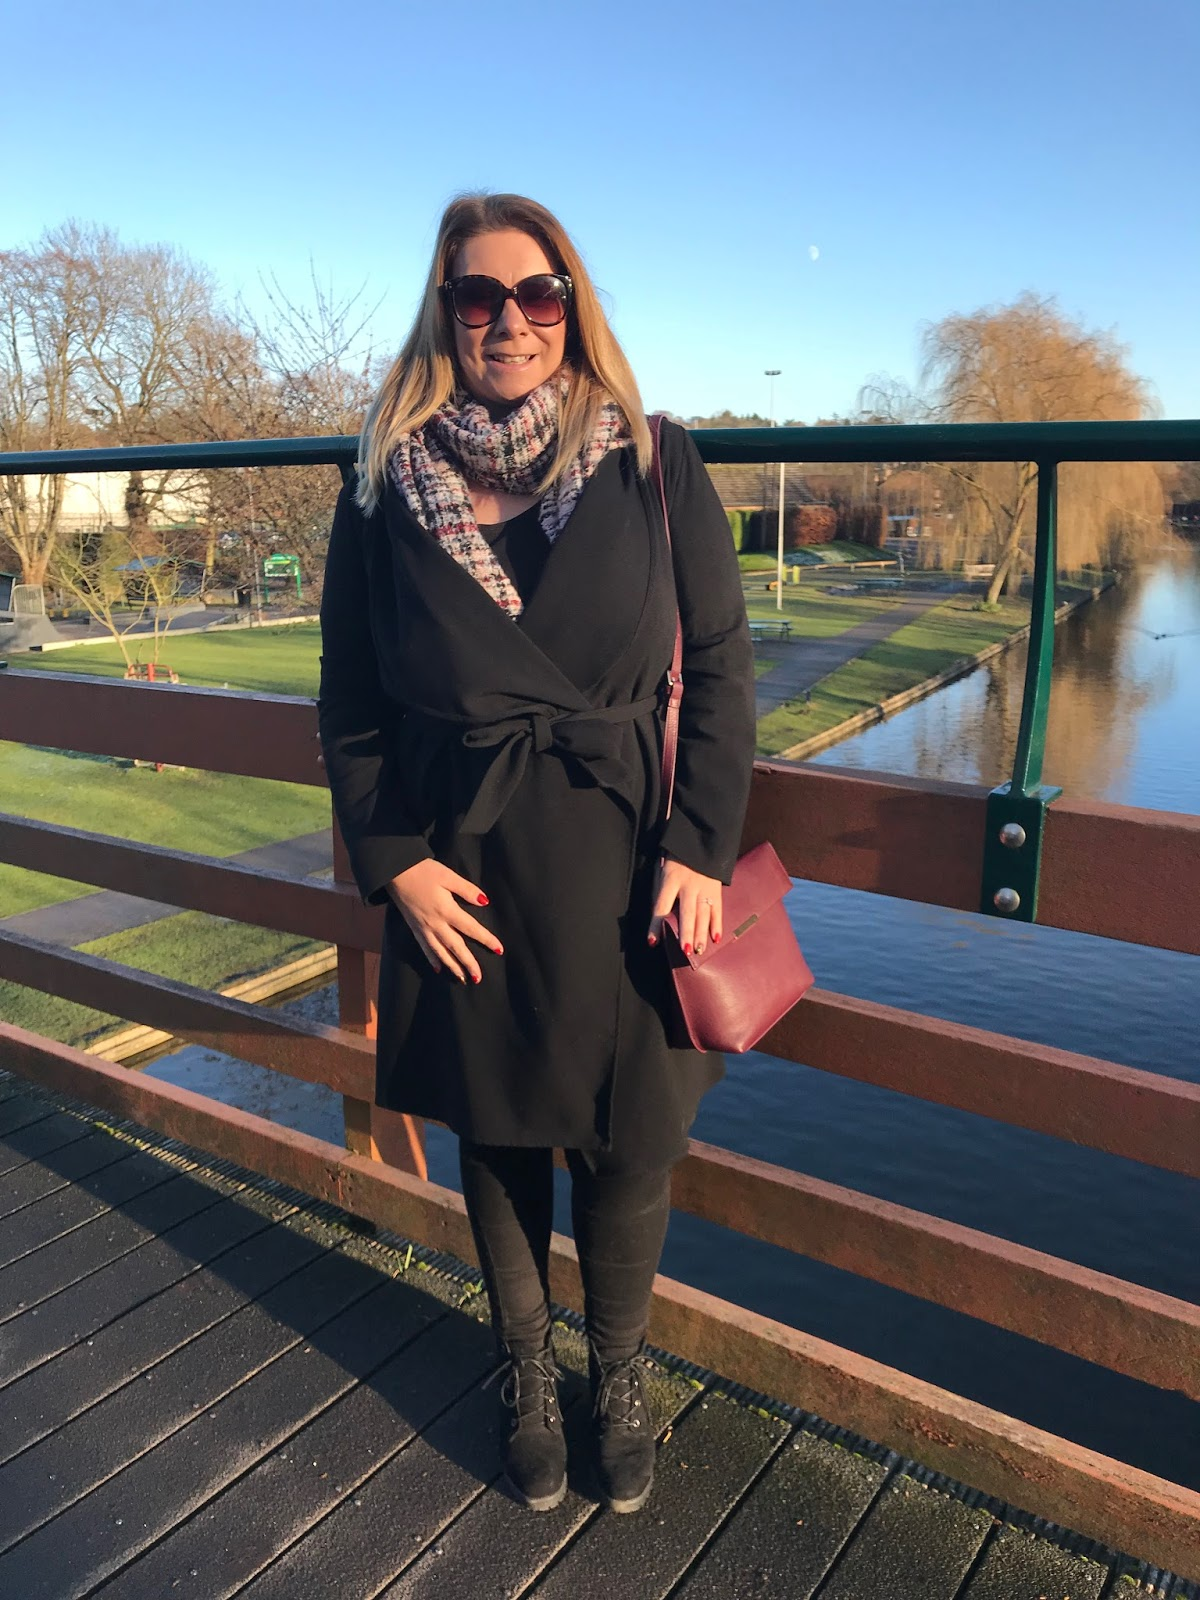 Basking in the winter sunshine wearing a classic black trench coat